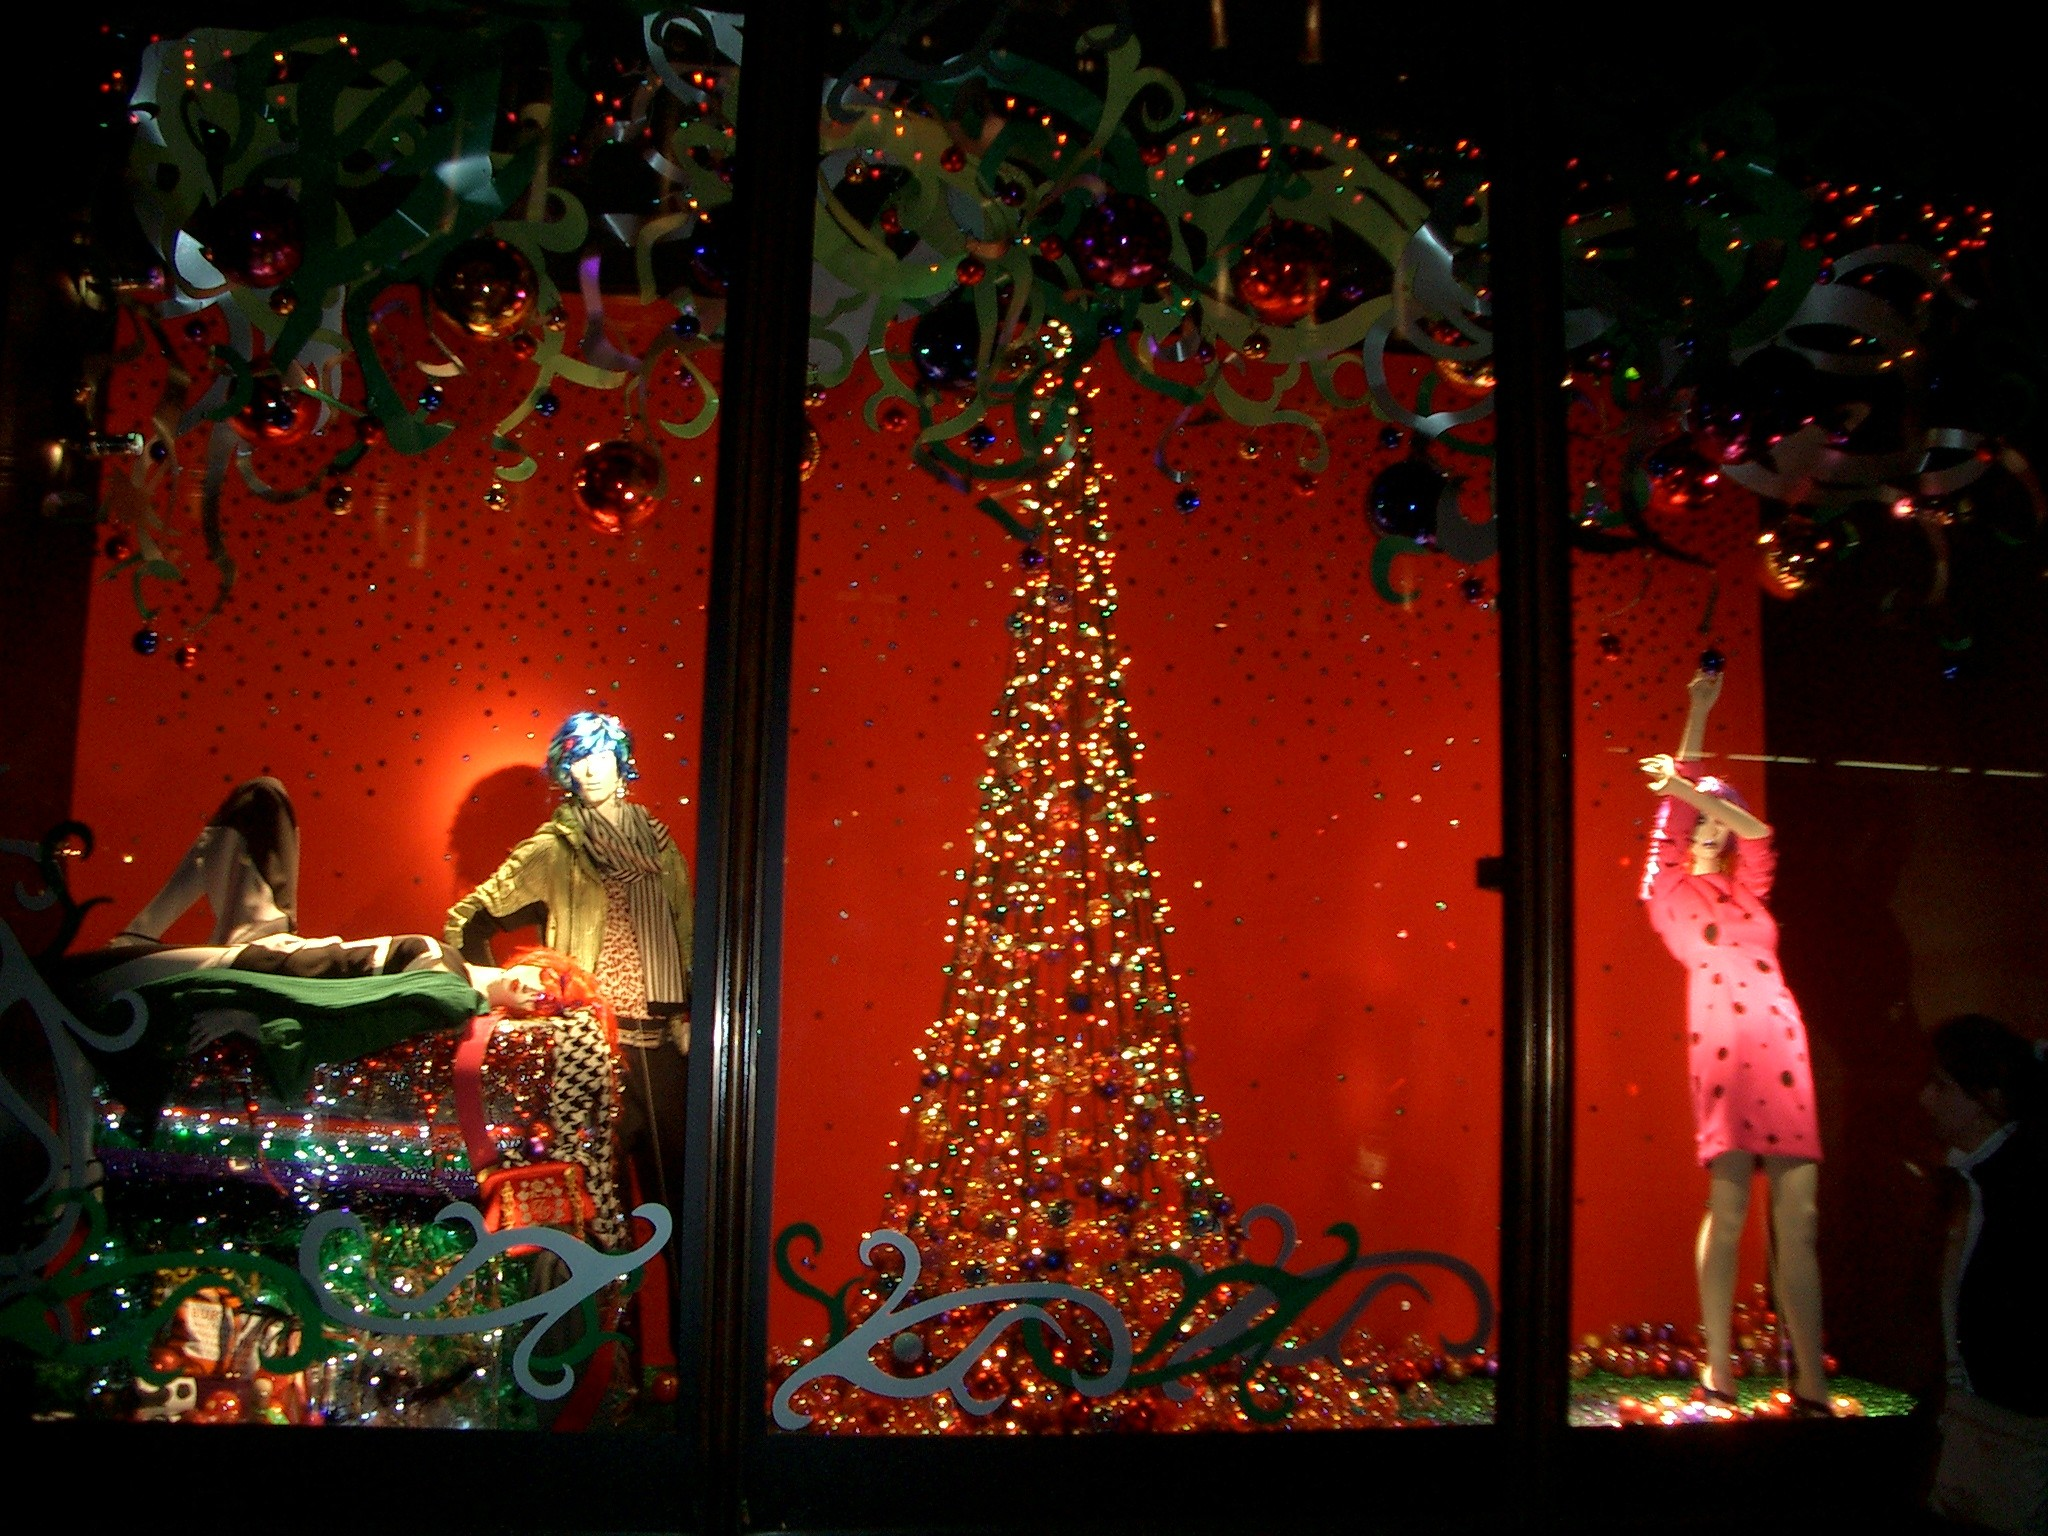 Harvey Nichols has a crush on glitter and wreath, as we can observe in their window display, but this time it's a red canvas and it's a perfect match with Christmas.